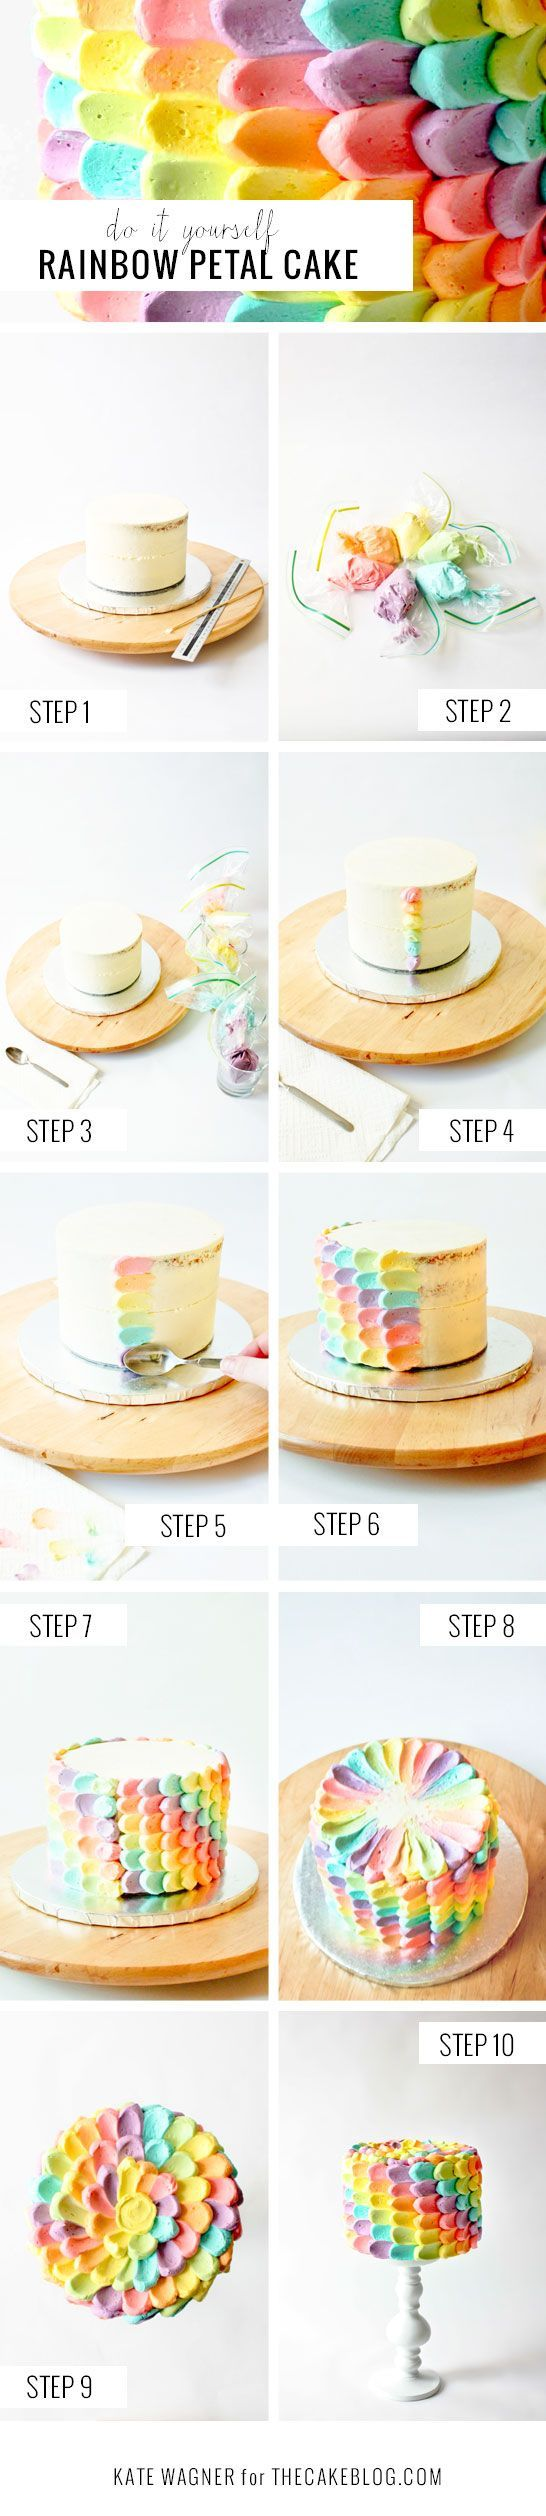 learn how to make this DIY Rainbow Petal Cake  |  by Kate Wagner for TheCakeBlog.com